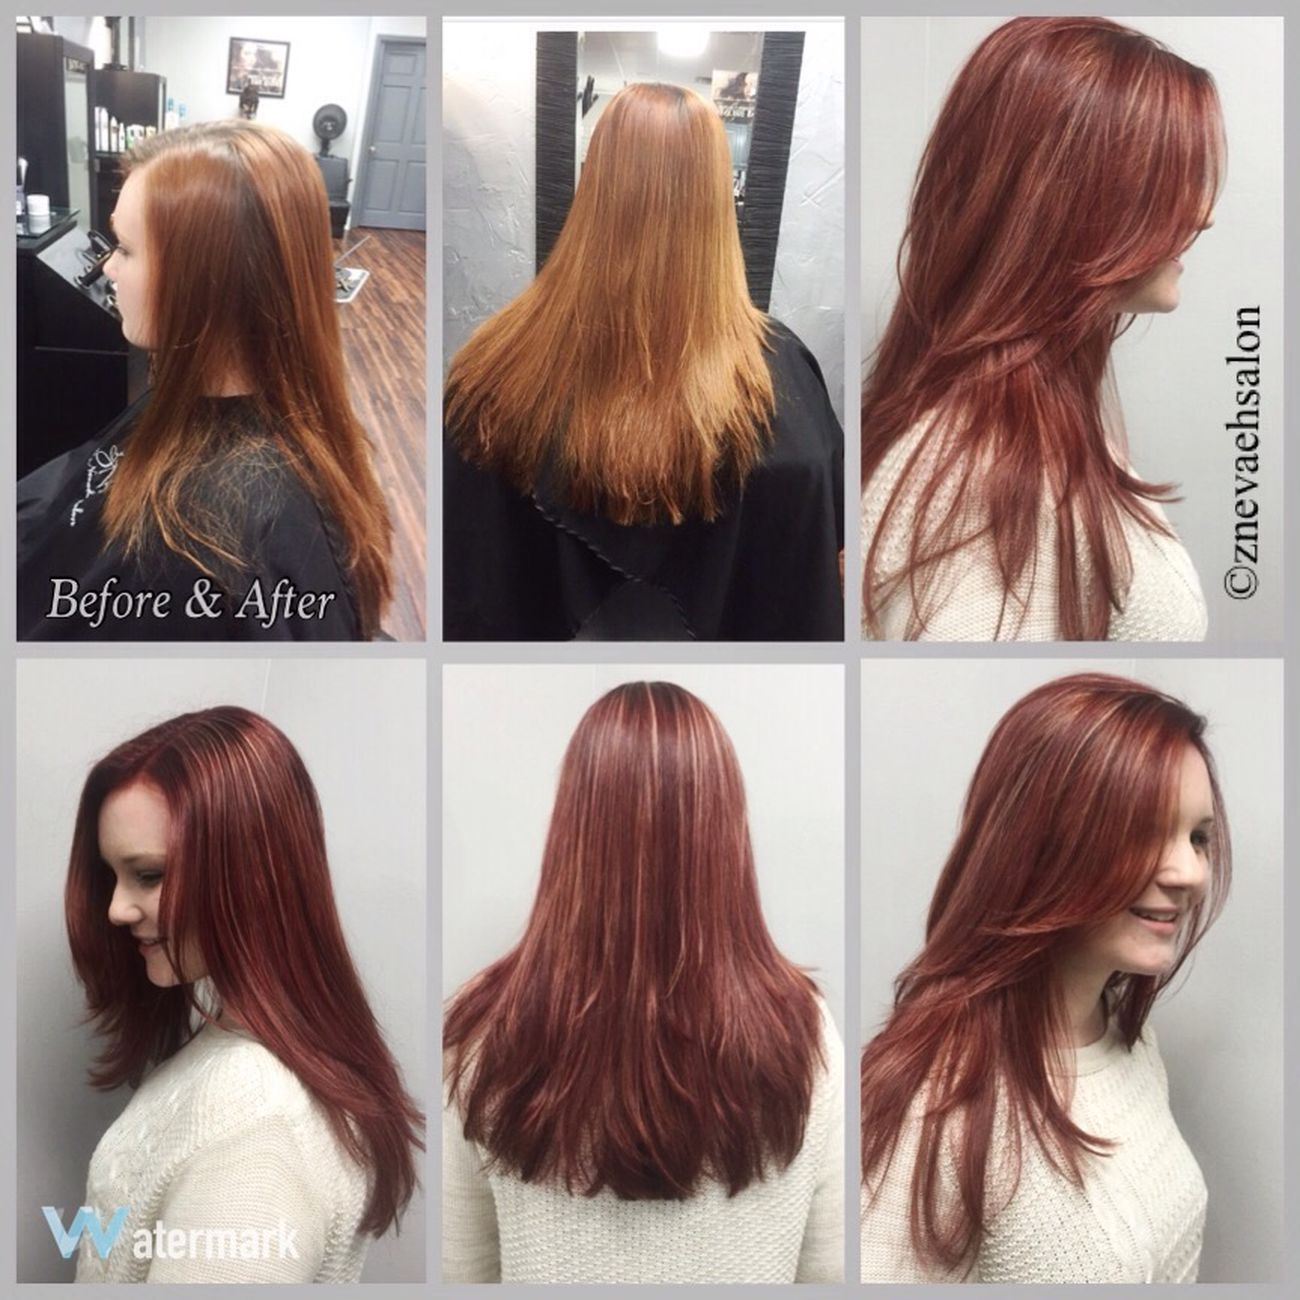 New Fall Red Color @znevaehsalon @lorealprous Check This Out Hair Eye4photography # Photooftheday L'Oreal Professionnel Z Nevaeh Salon Hairstyle Haircolor RedHAIR ❤ Knoxvillesalon Tecni.art